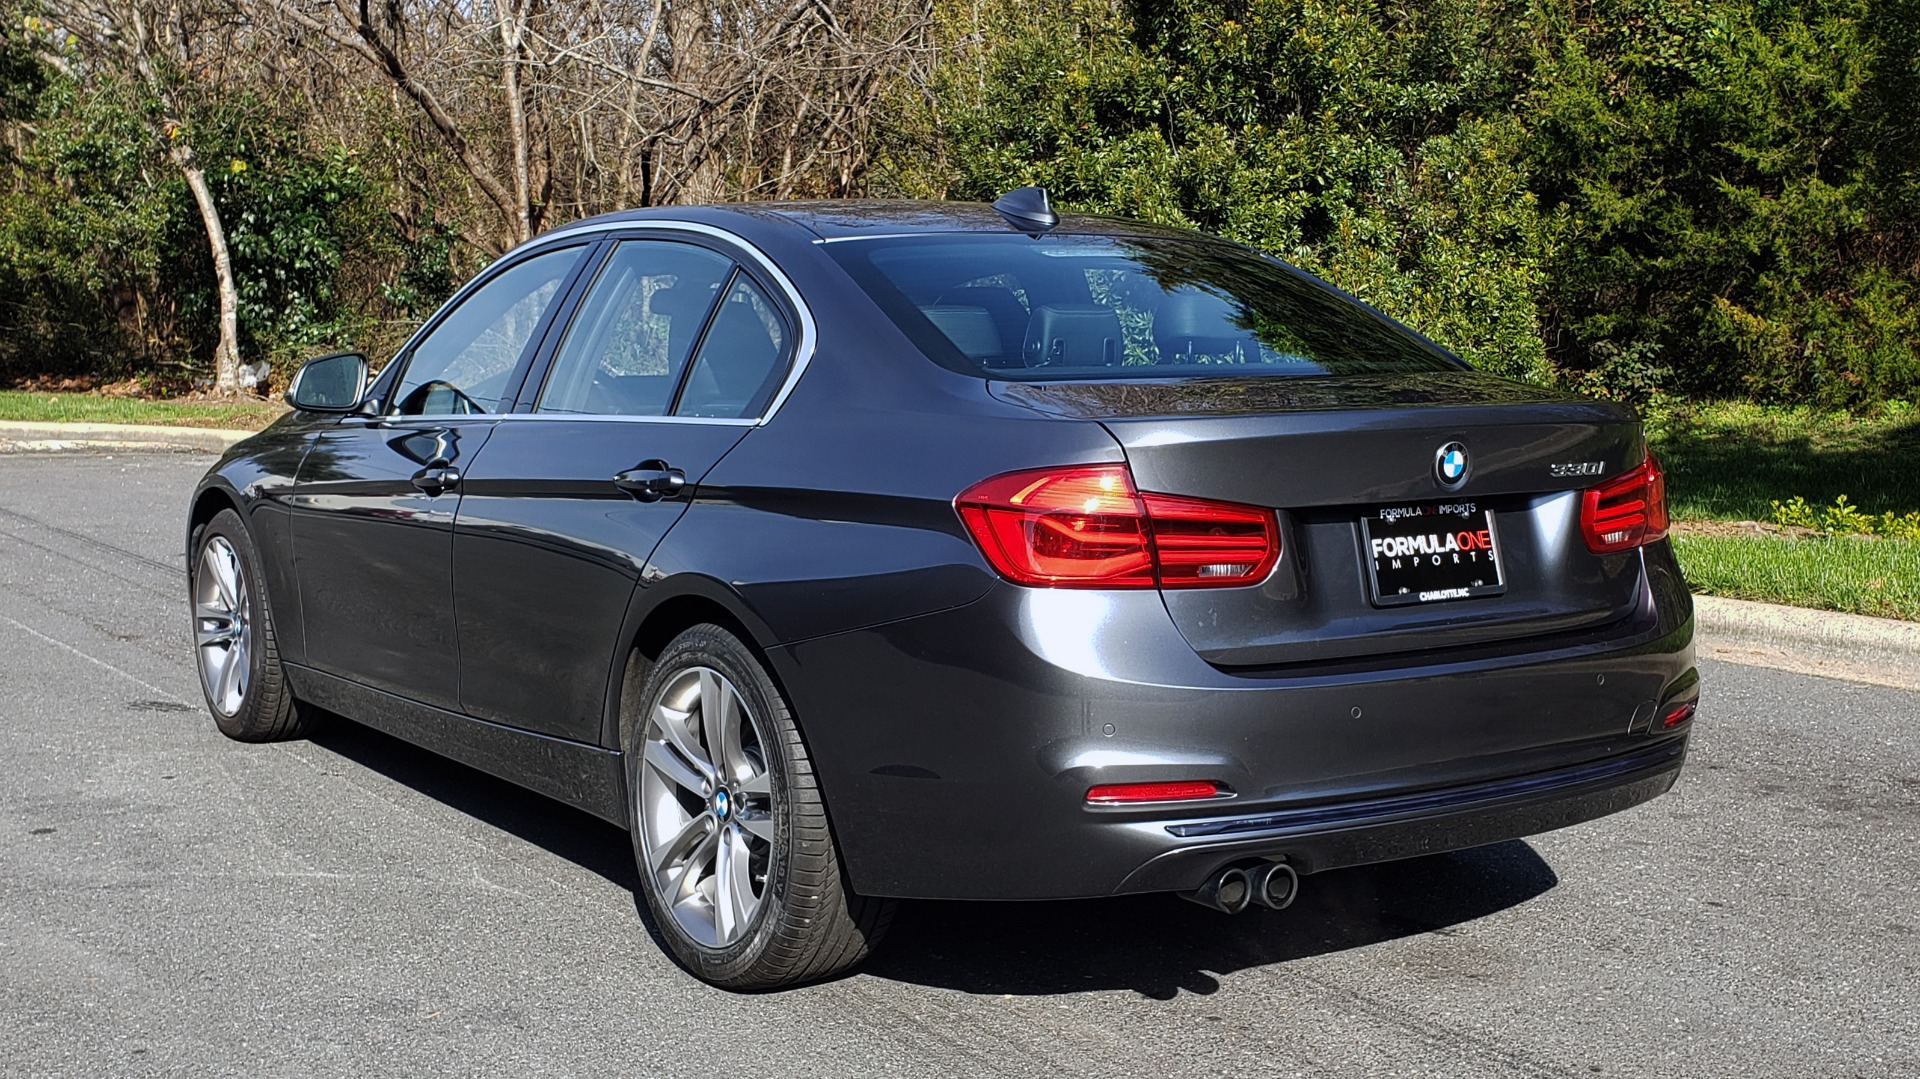 Used 2017 BMW 3 SERIES 330I PREMIUM / DRVR ASST / NAV / SUNROOF / HTD STS / REARVIEW for sale Sold at Formula Imports in Charlotte NC 28227 3